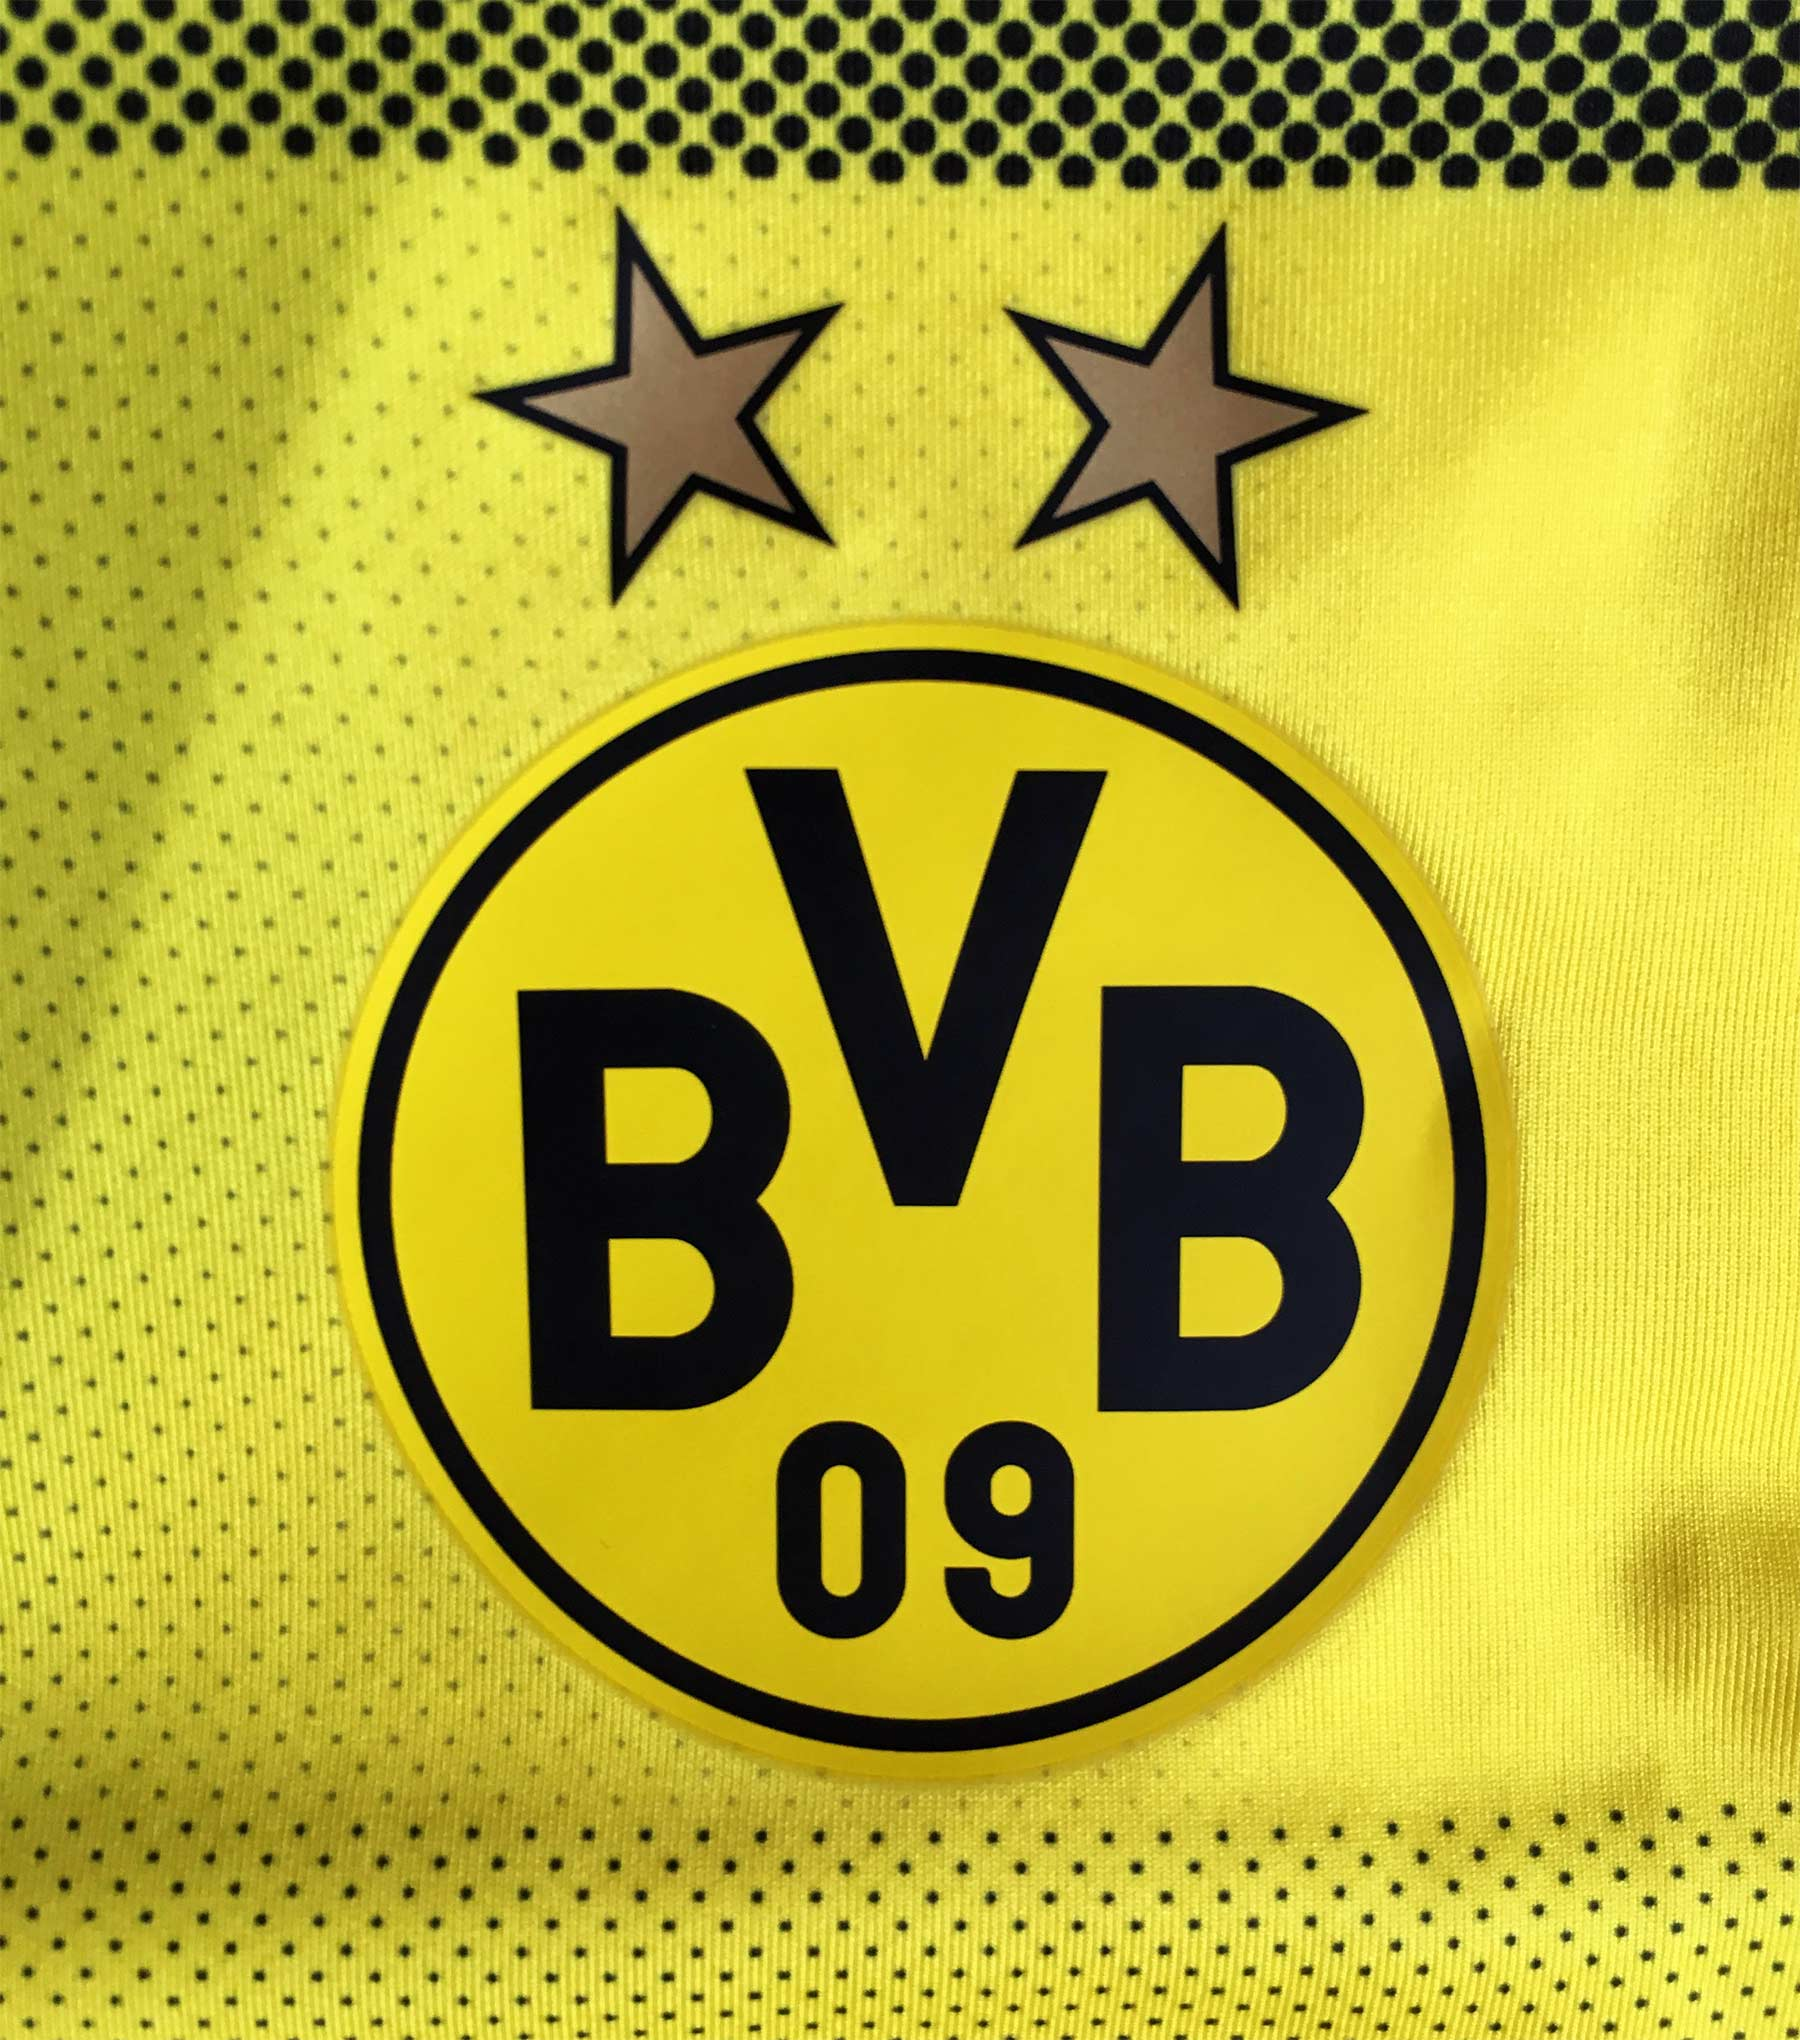 das neue bvb trikot f r die saison 2017 18. Black Bedroom Furniture Sets. Home Design Ideas